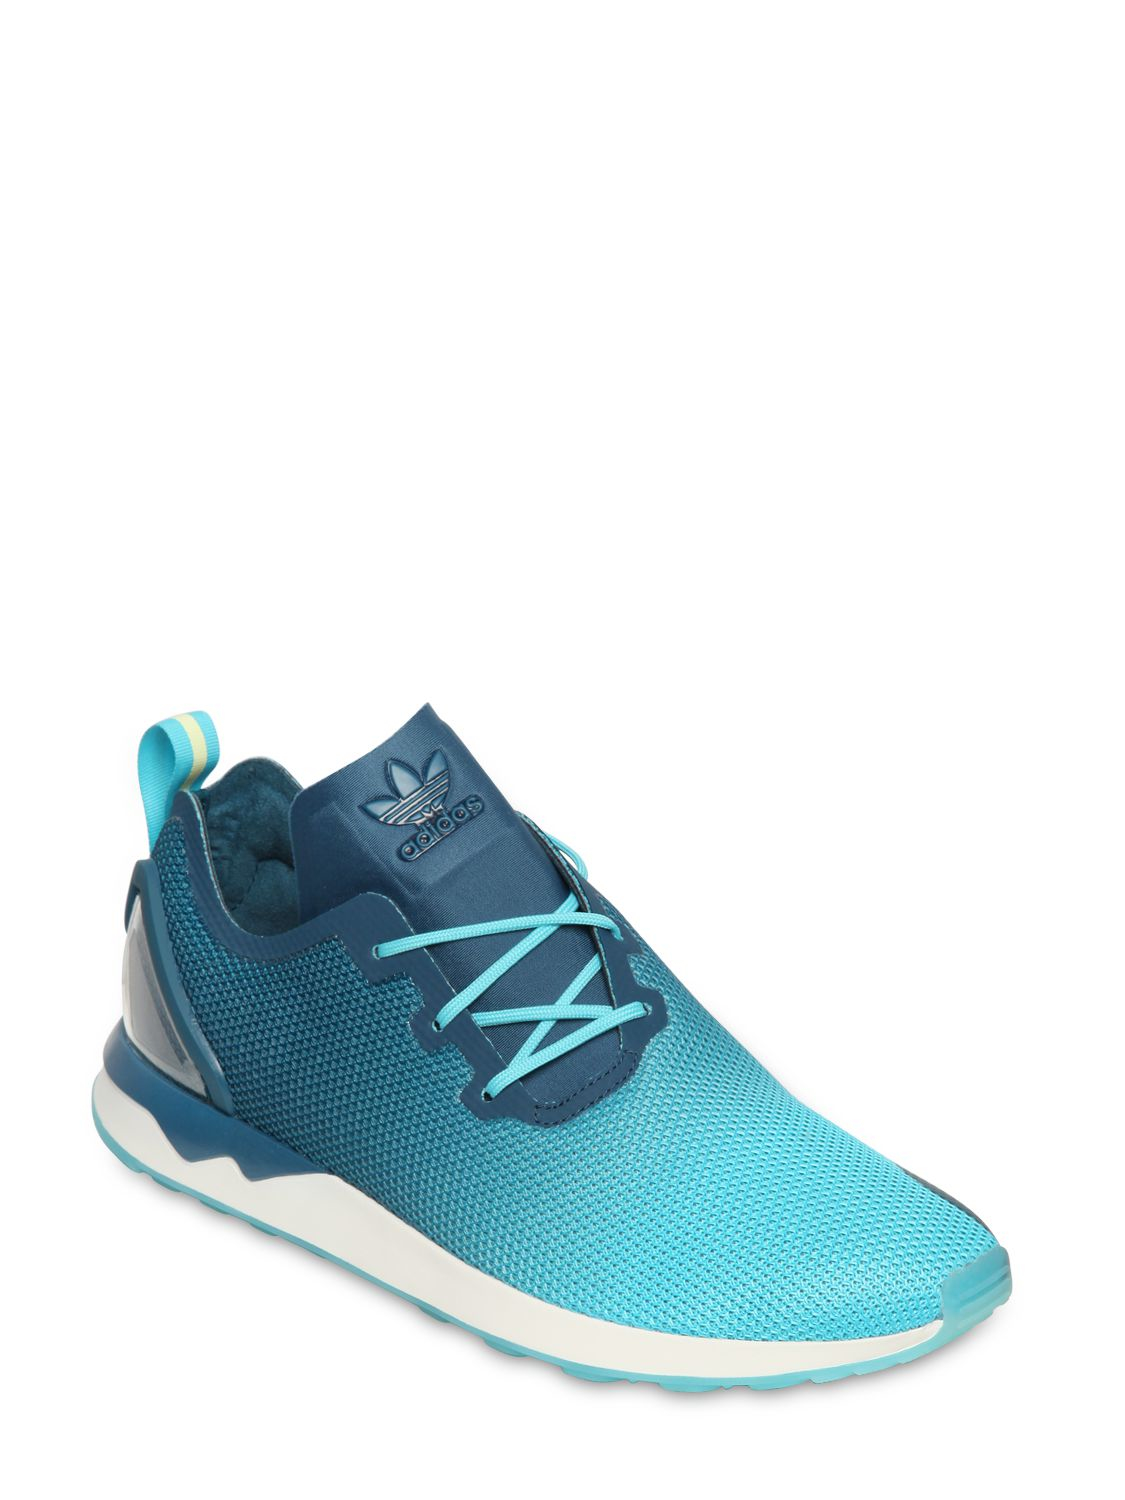 885f20b0f ... spain adidas zx flux light blue 0bcc6 1a7a0